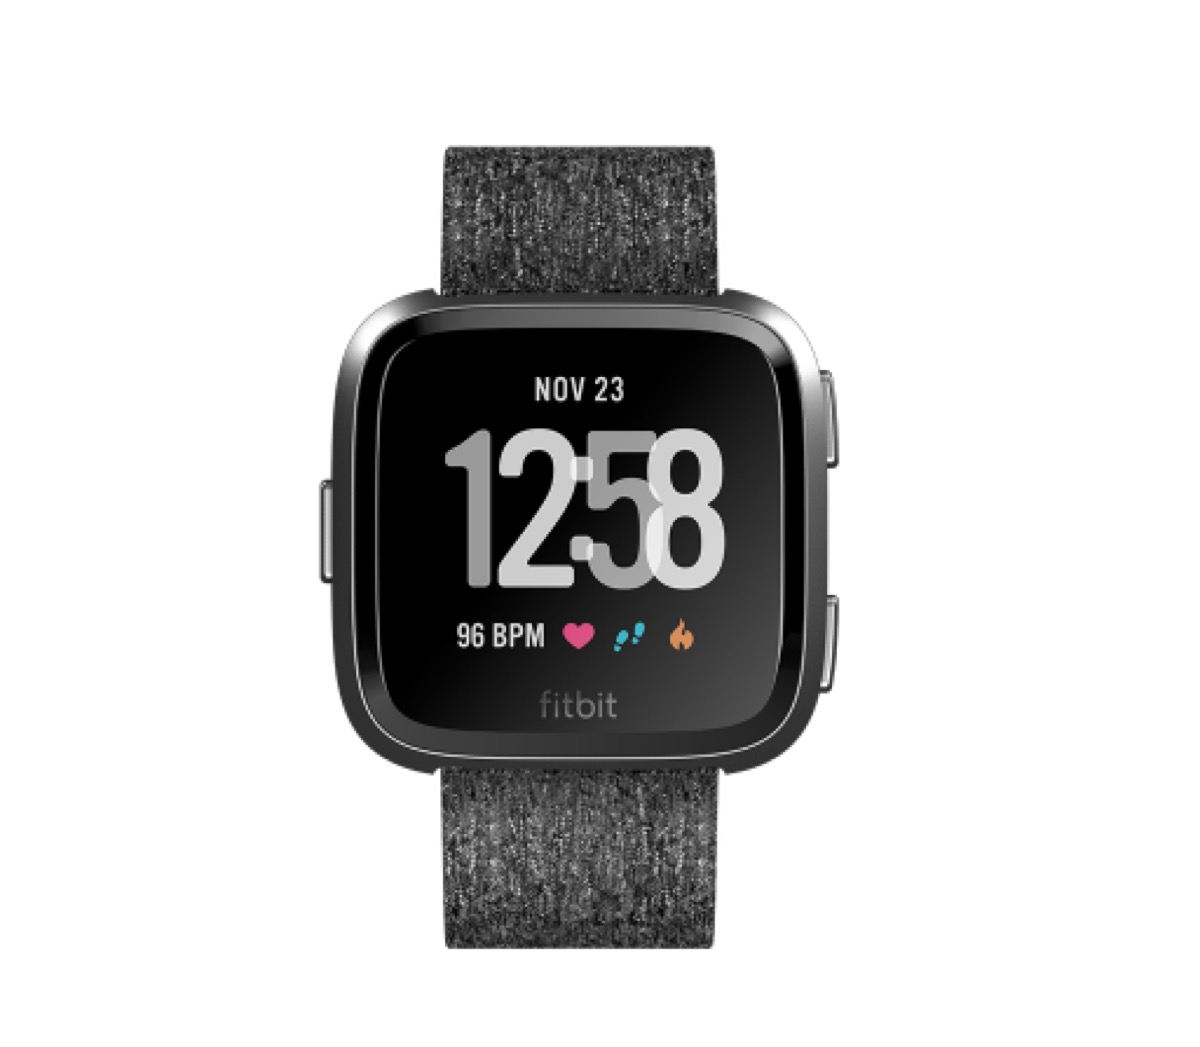 fitbit versa, gifts for girlfriend